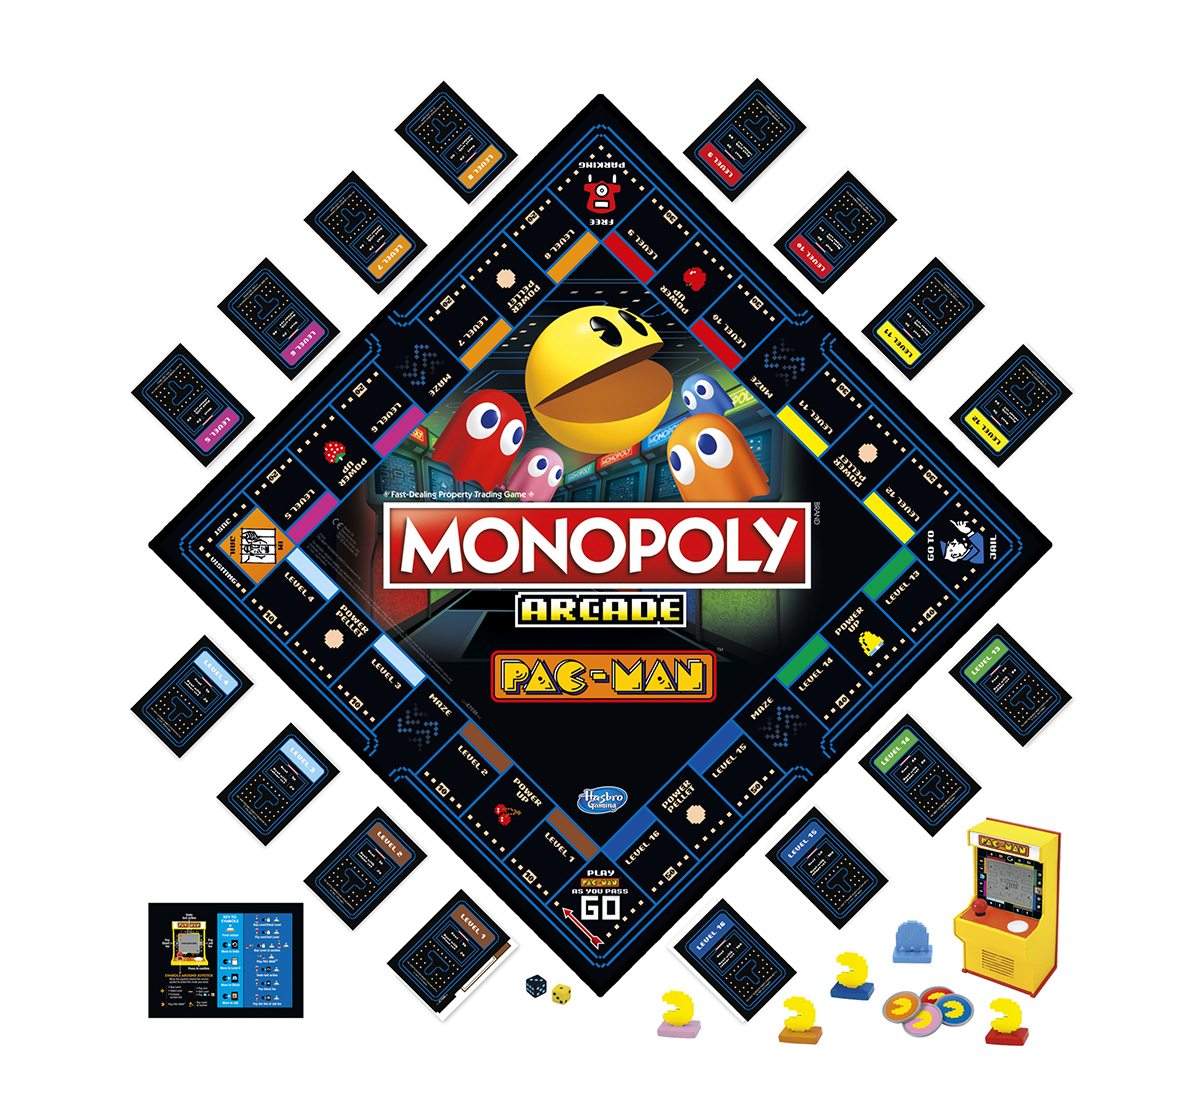 Hasbro Gaming | Hasbro Gaming Monopoly Arcade Pac-Man Game; Monopoly Board Game for Kids Ages 8 and Up; Includes Banking and Arcade Unit